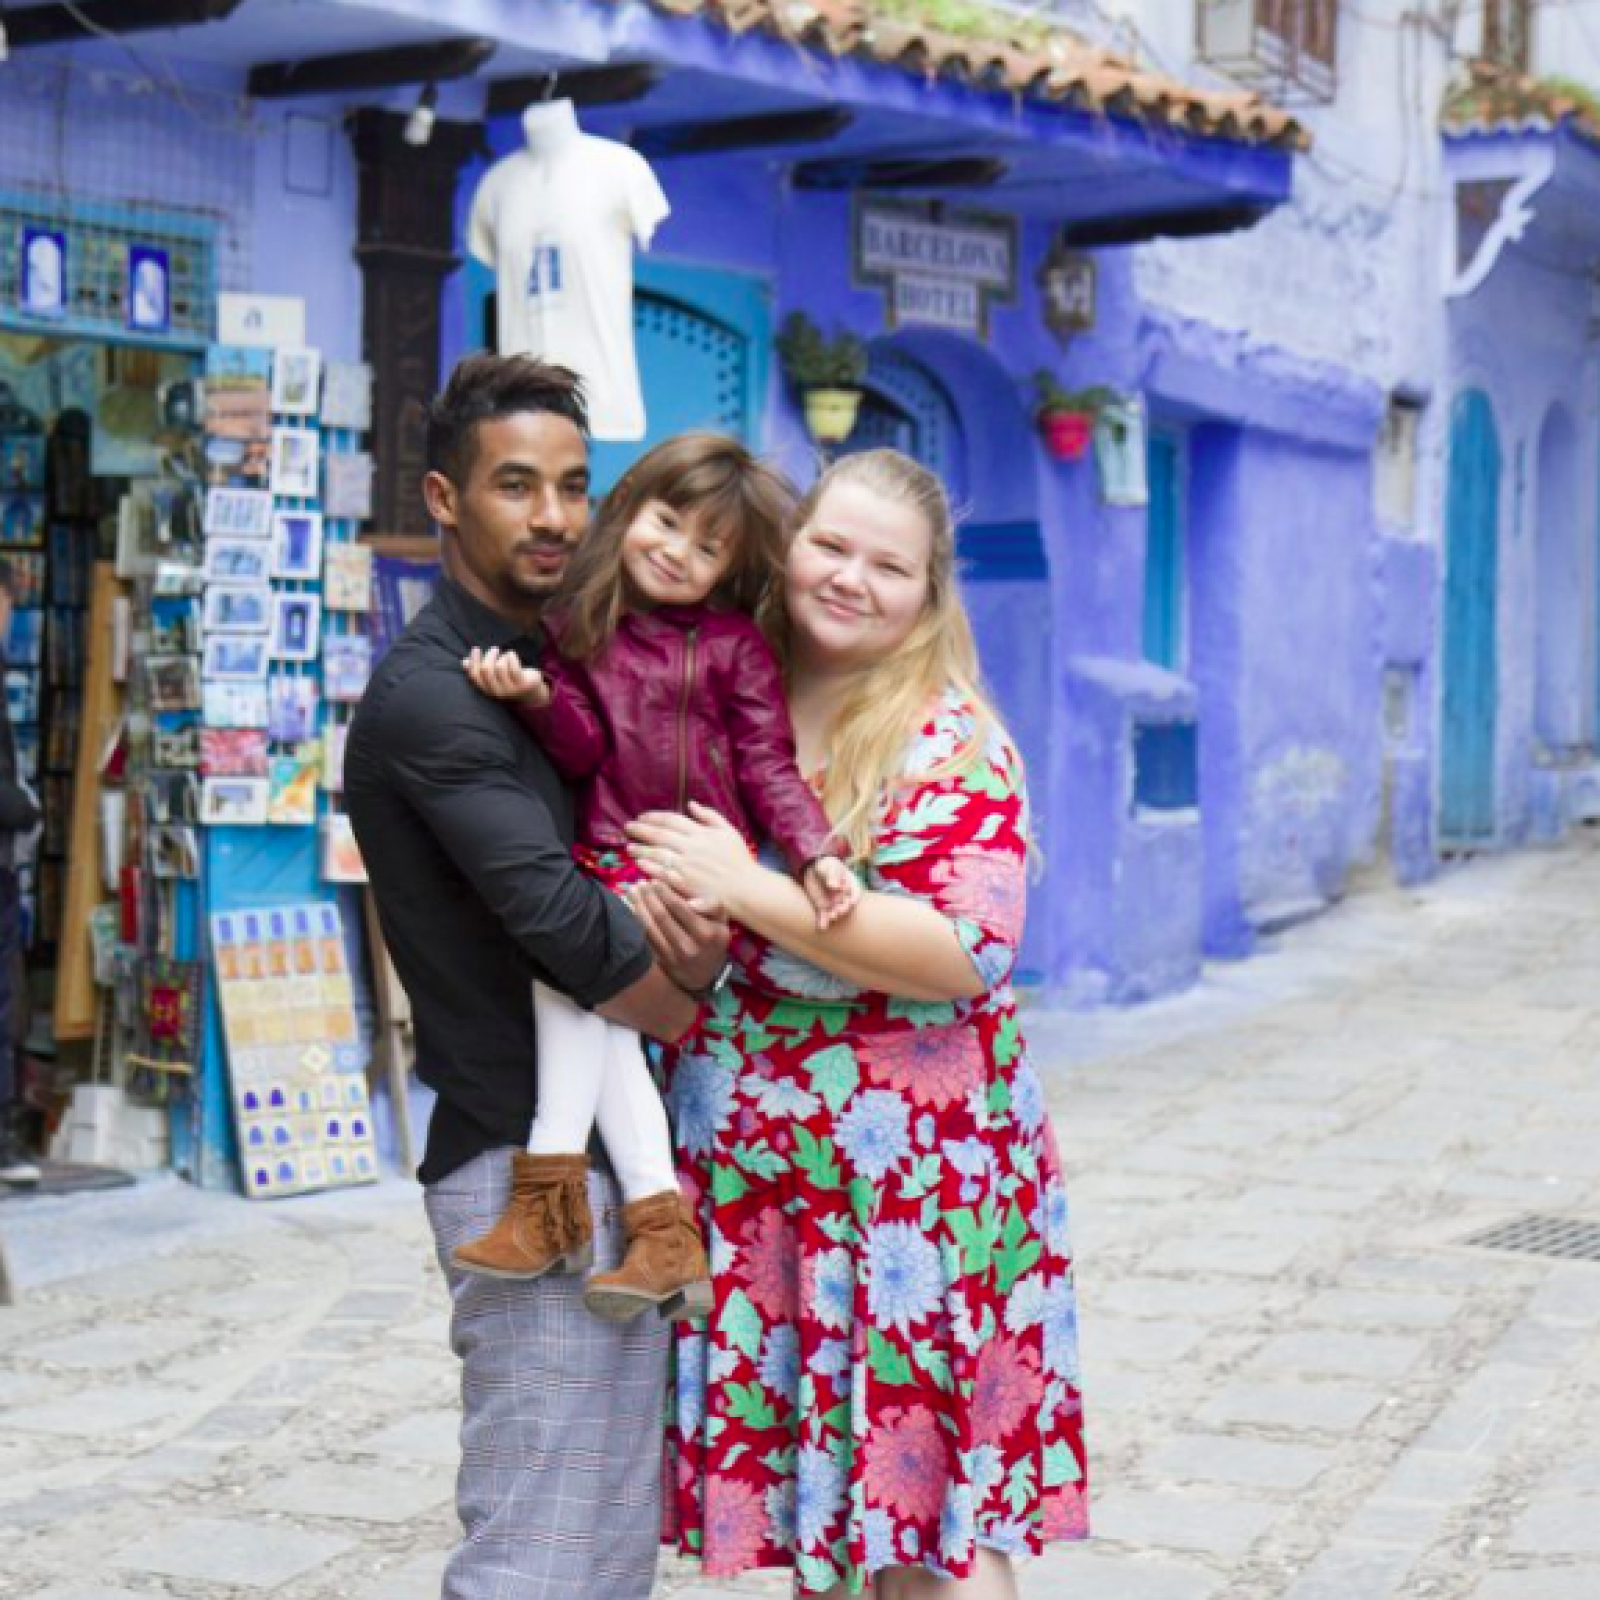 Why Nicole and Azan's Story Wasn't Featured on Sunday's '90 Day Fiancé'